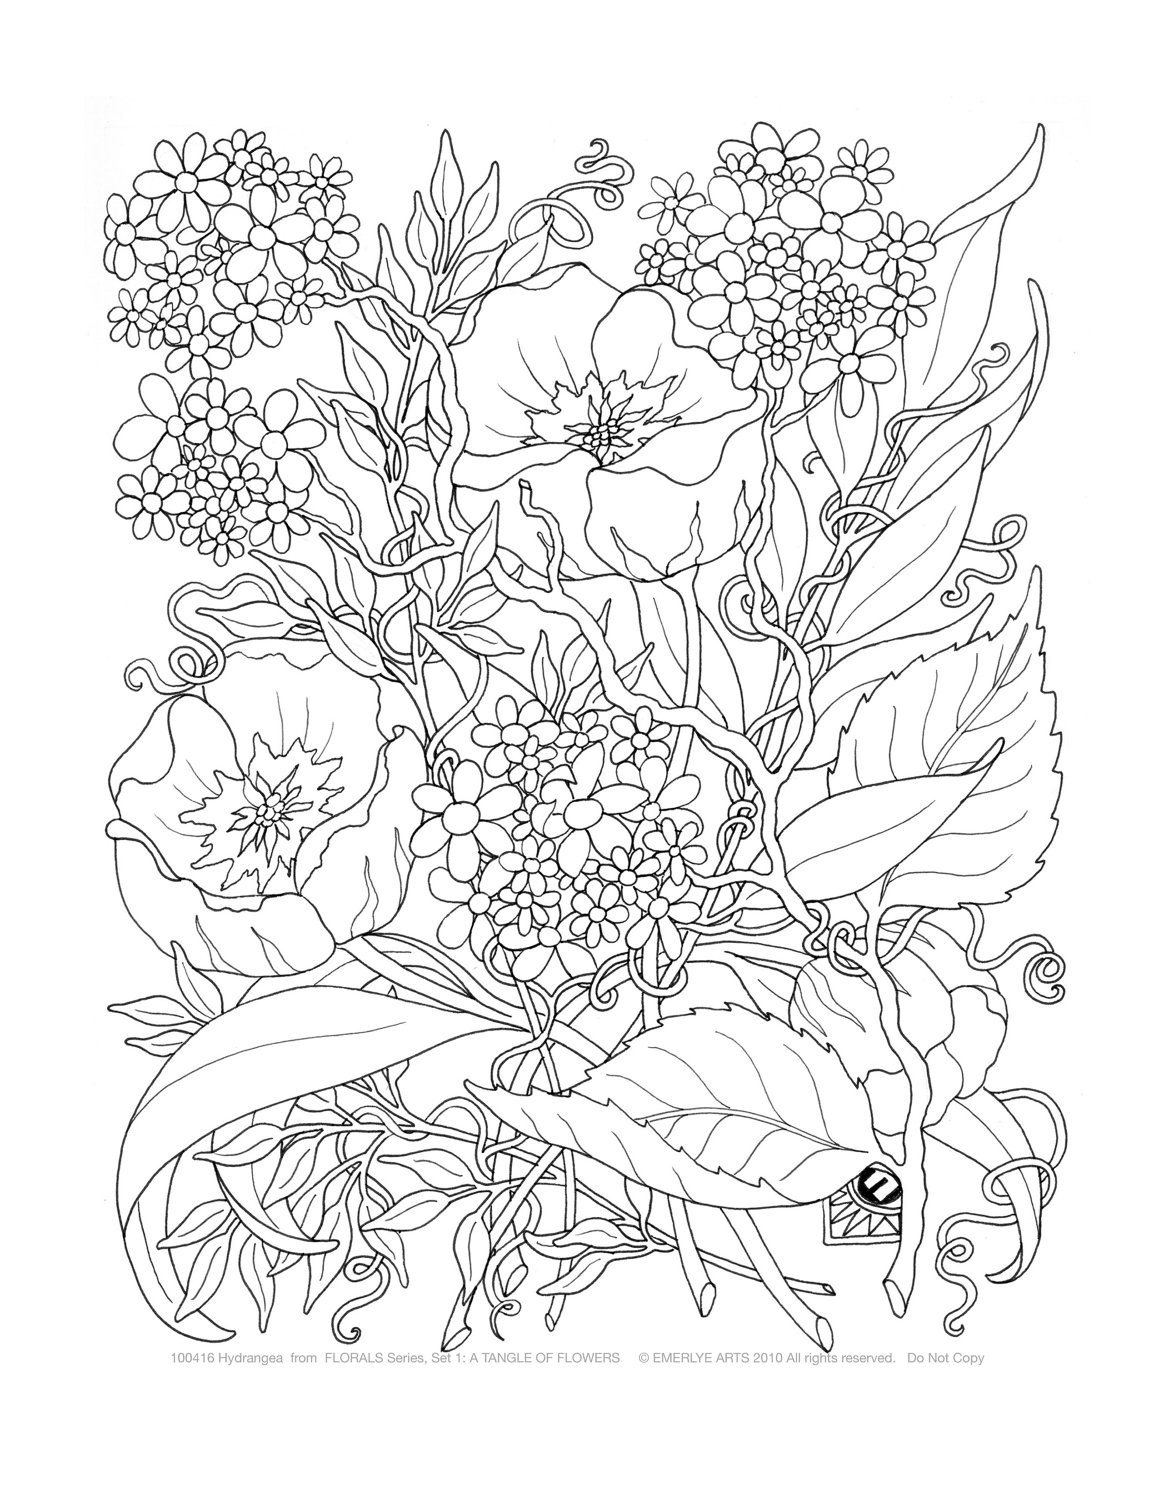 Free Coloring Pages For Adults  Coloring Pages for Adults Free